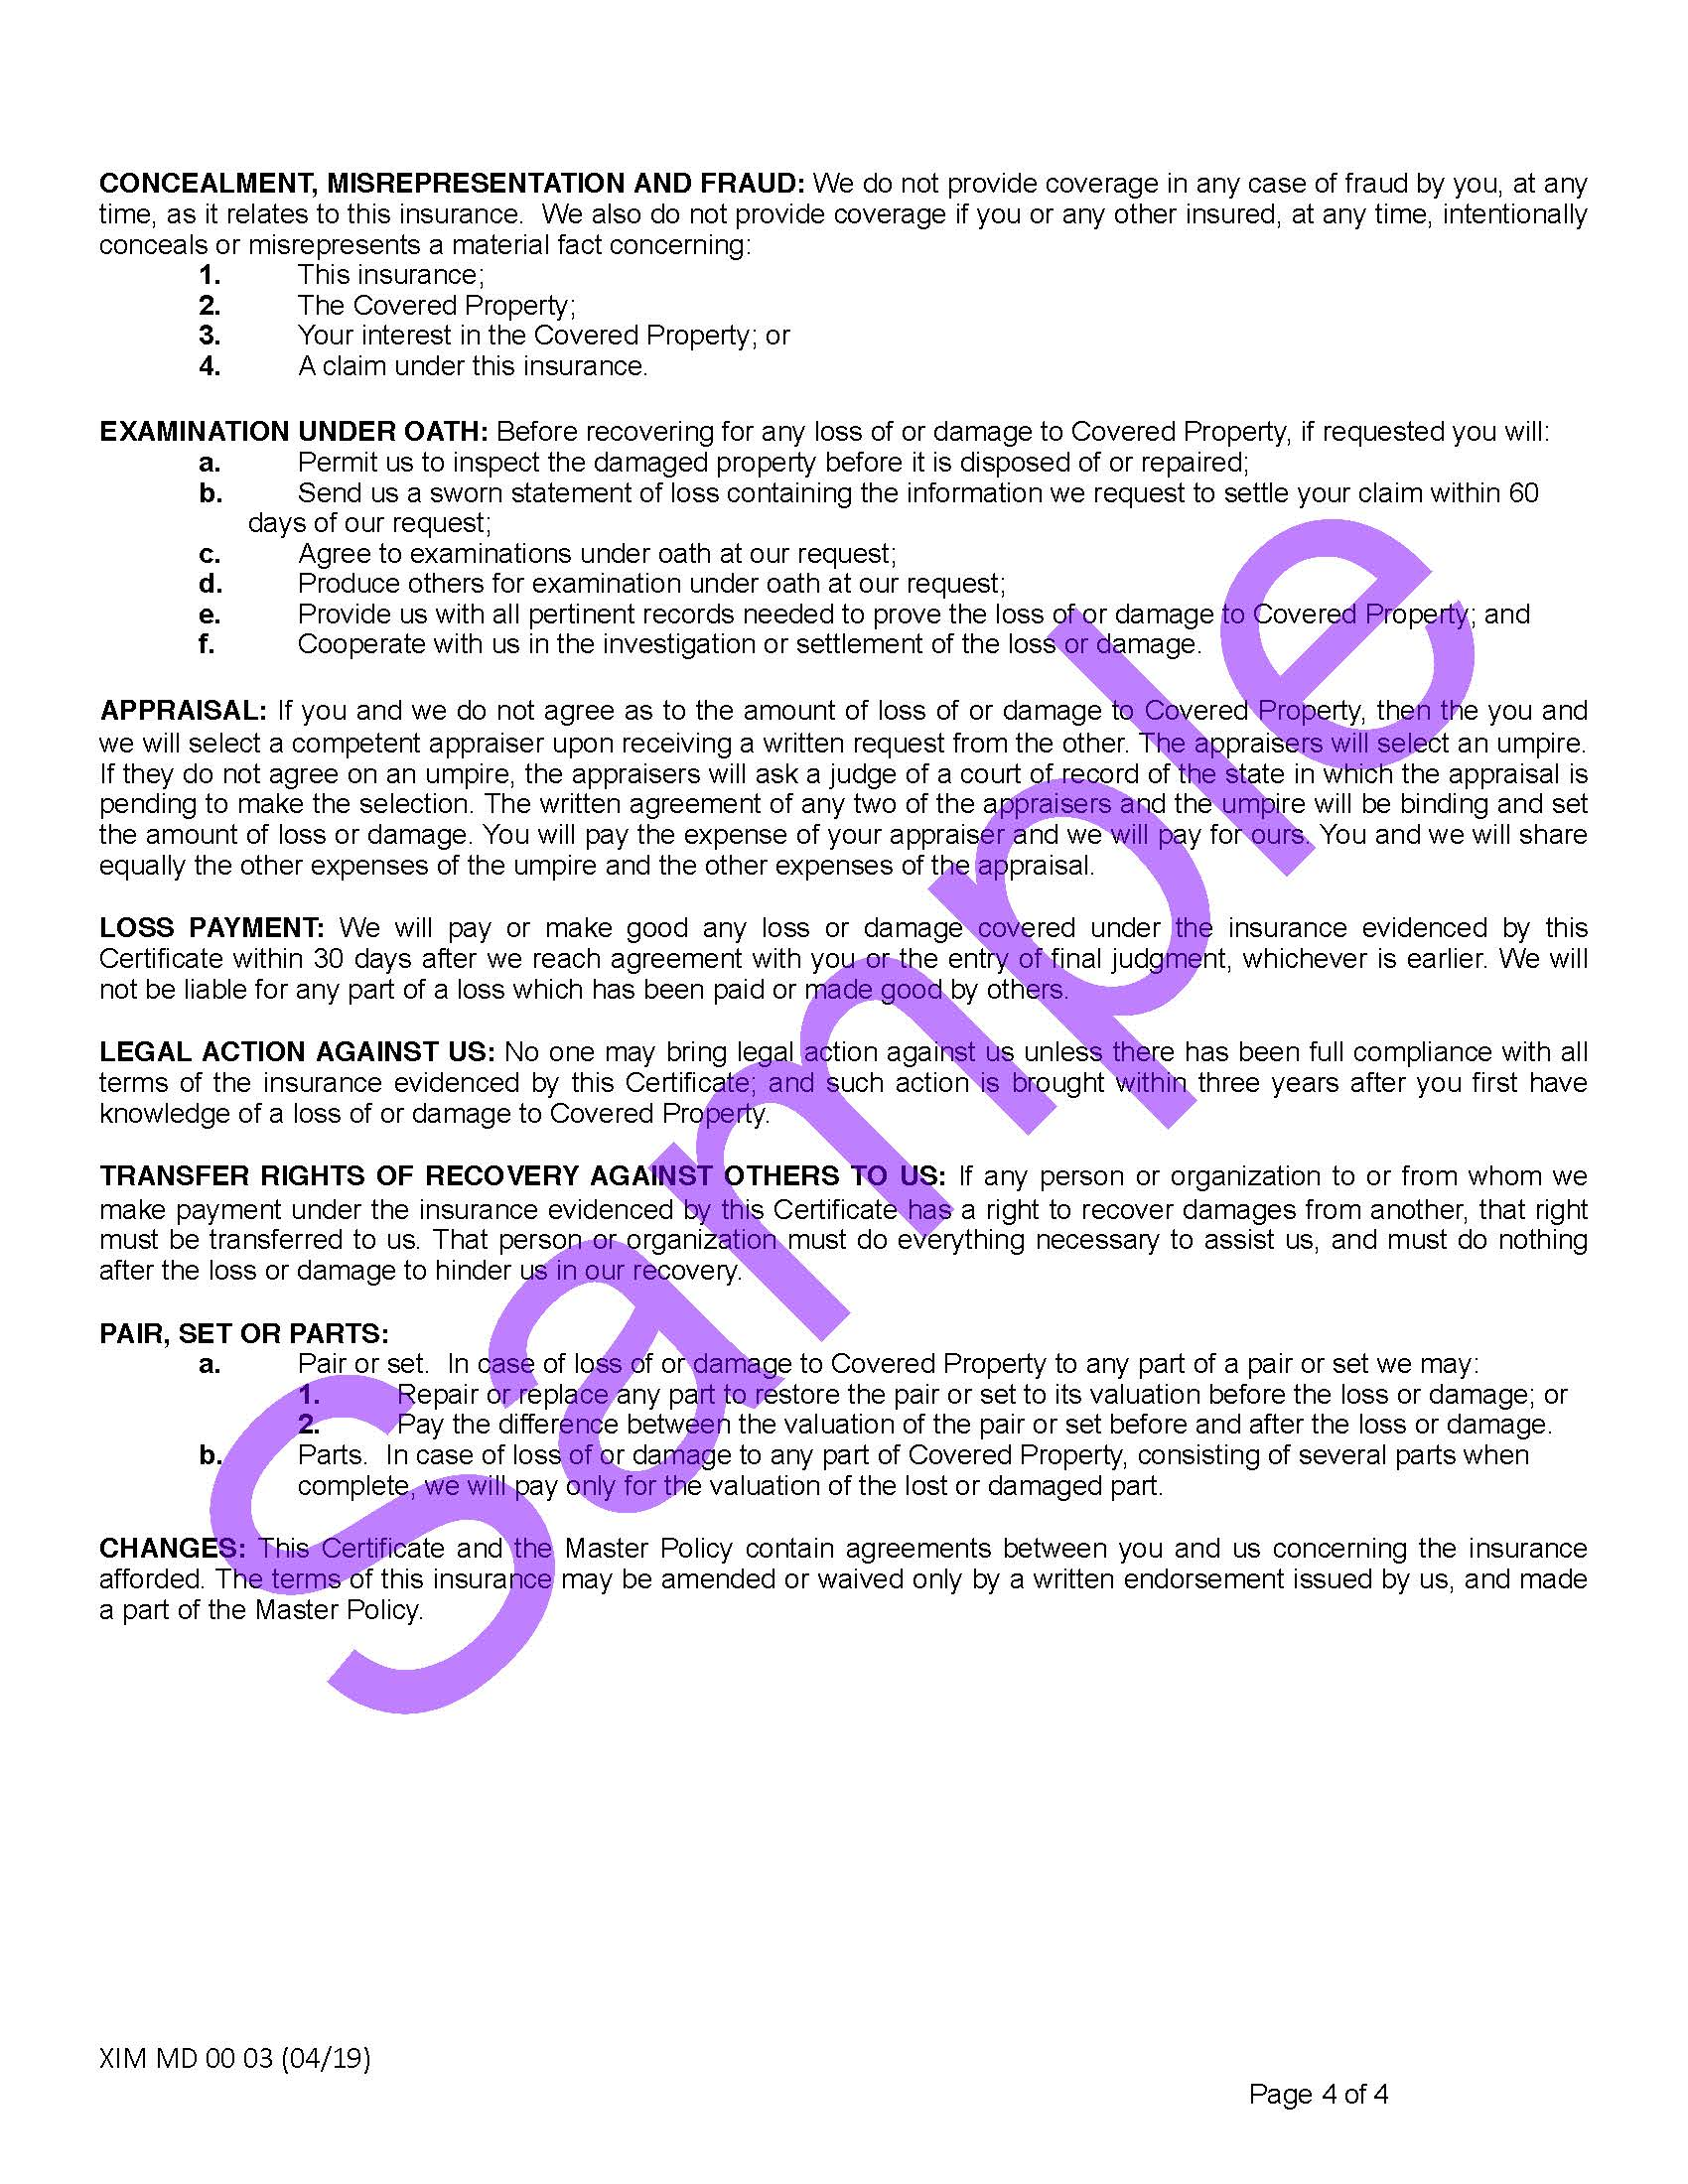 XIM MD 00 03 04 19 Maryland Certificate of InsuranceSample_Page_4.jpg